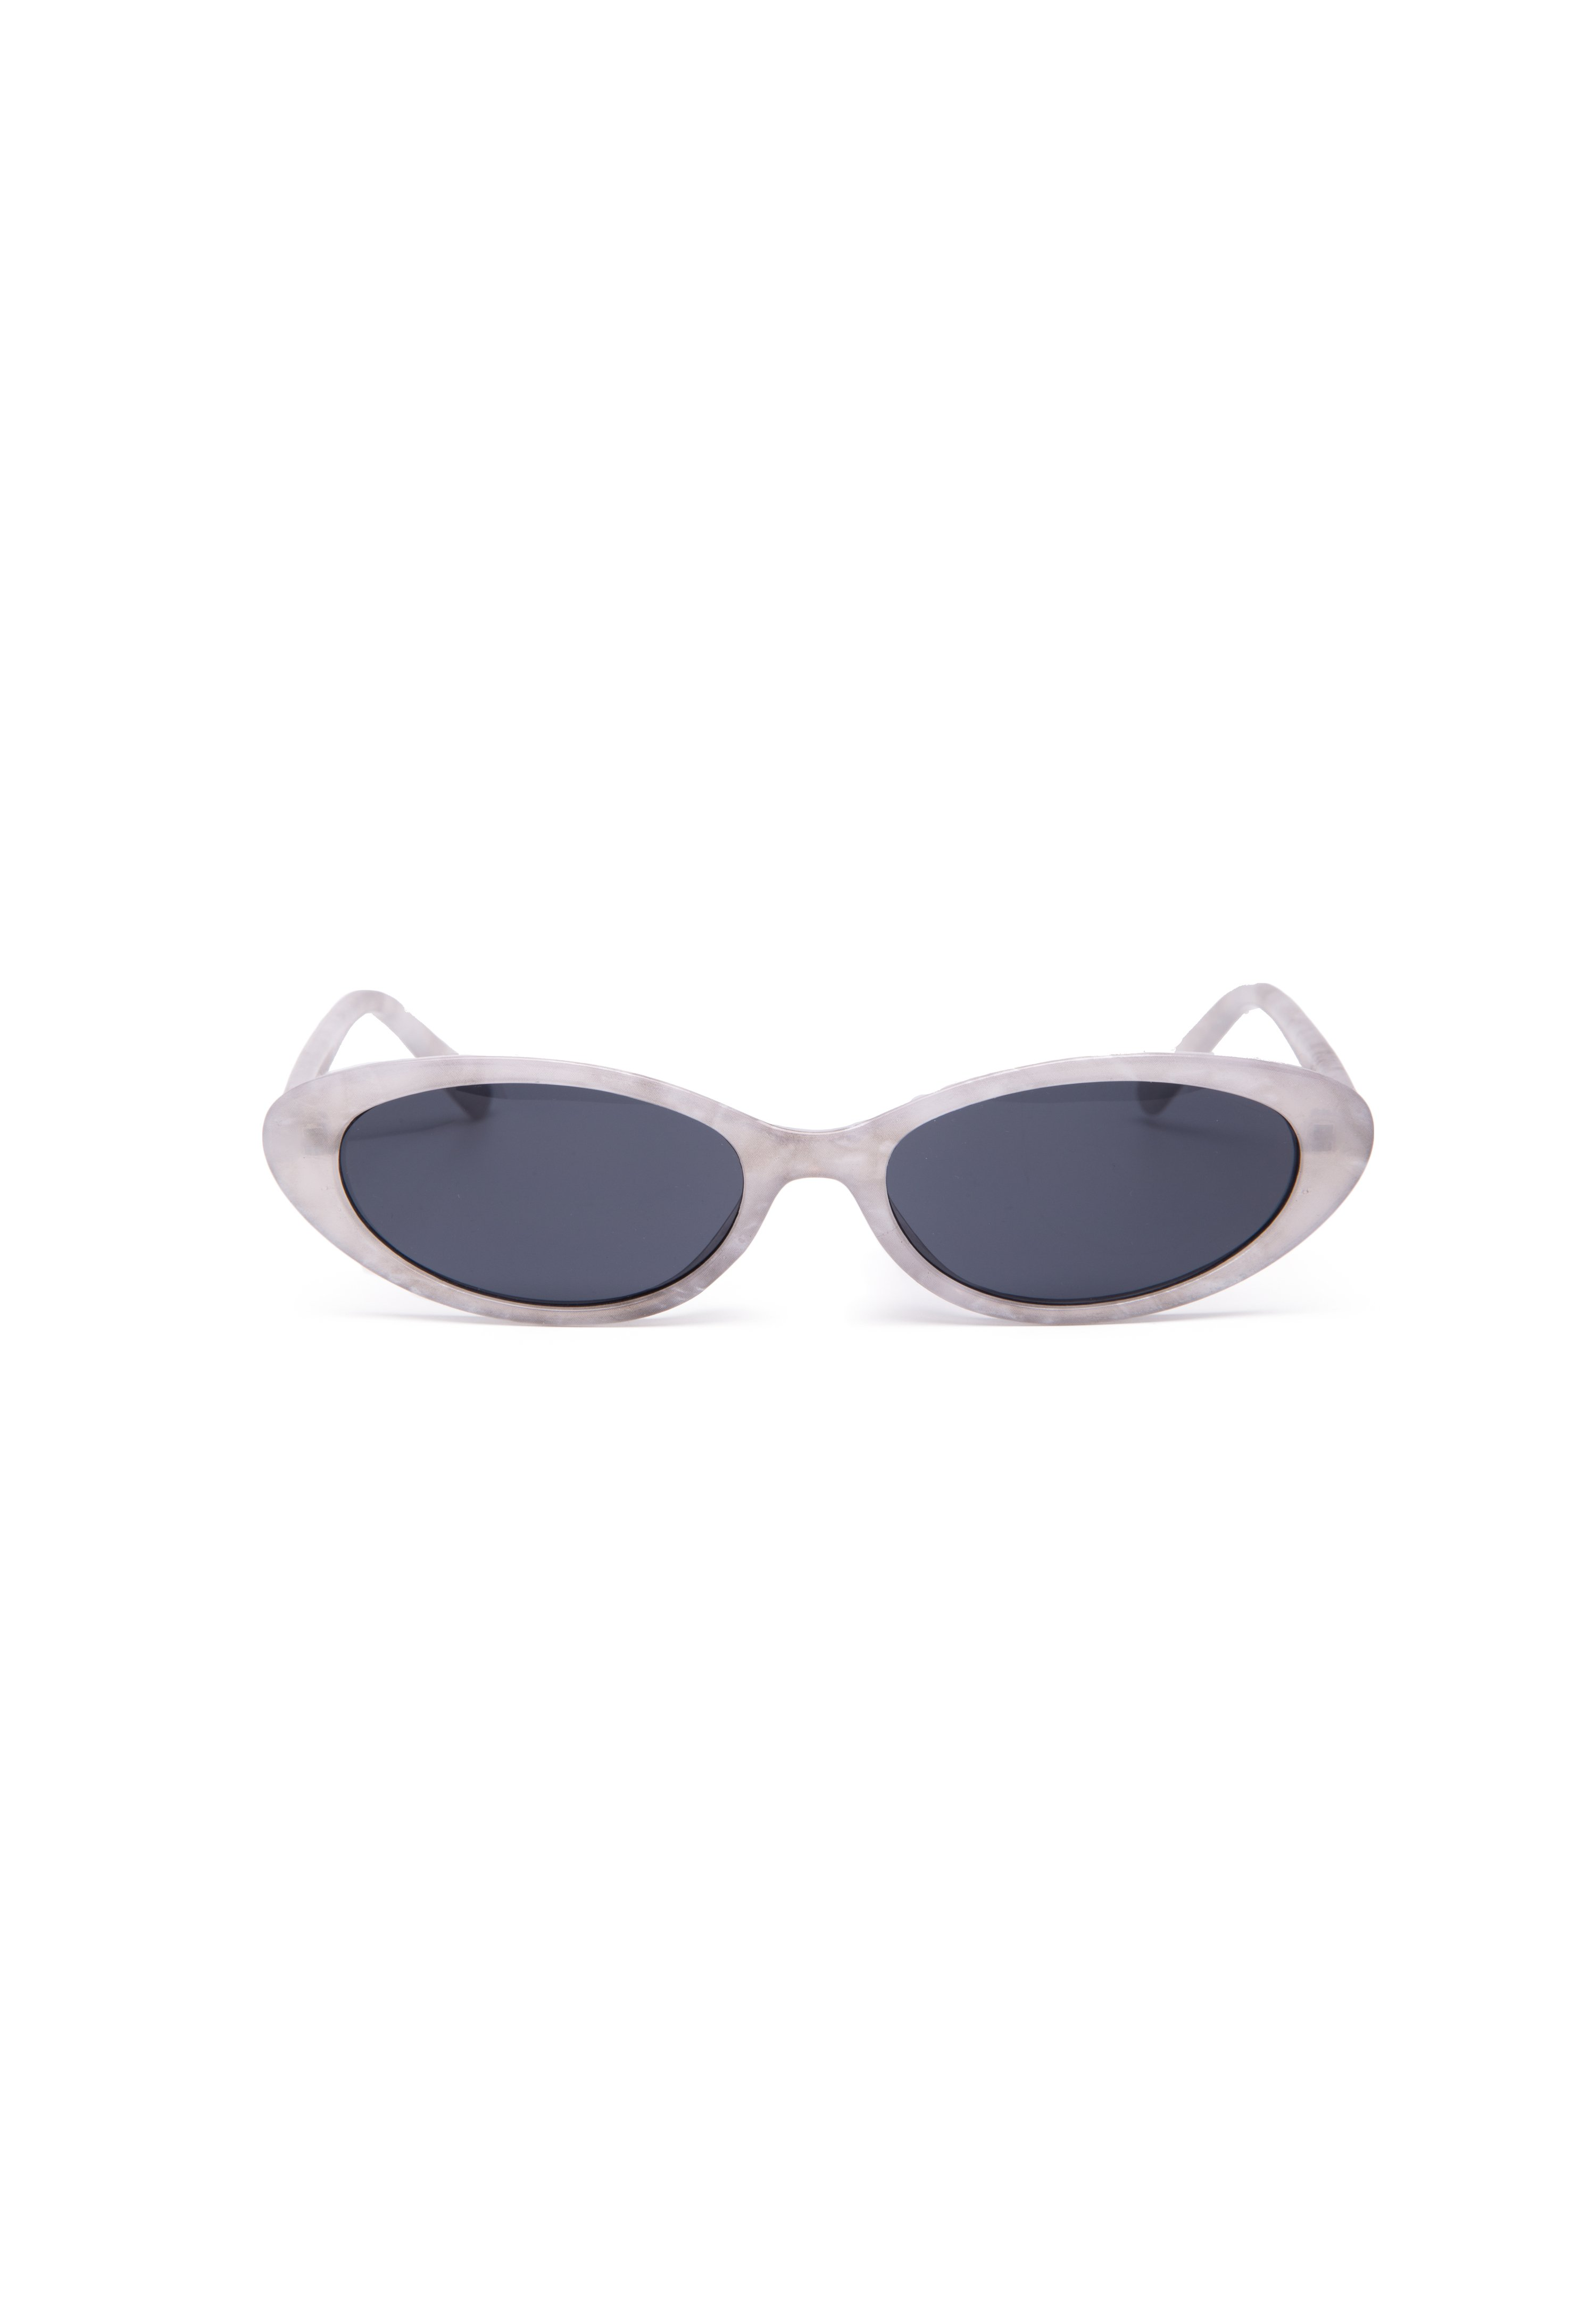 Jeepers Peepers Sunglasses - white